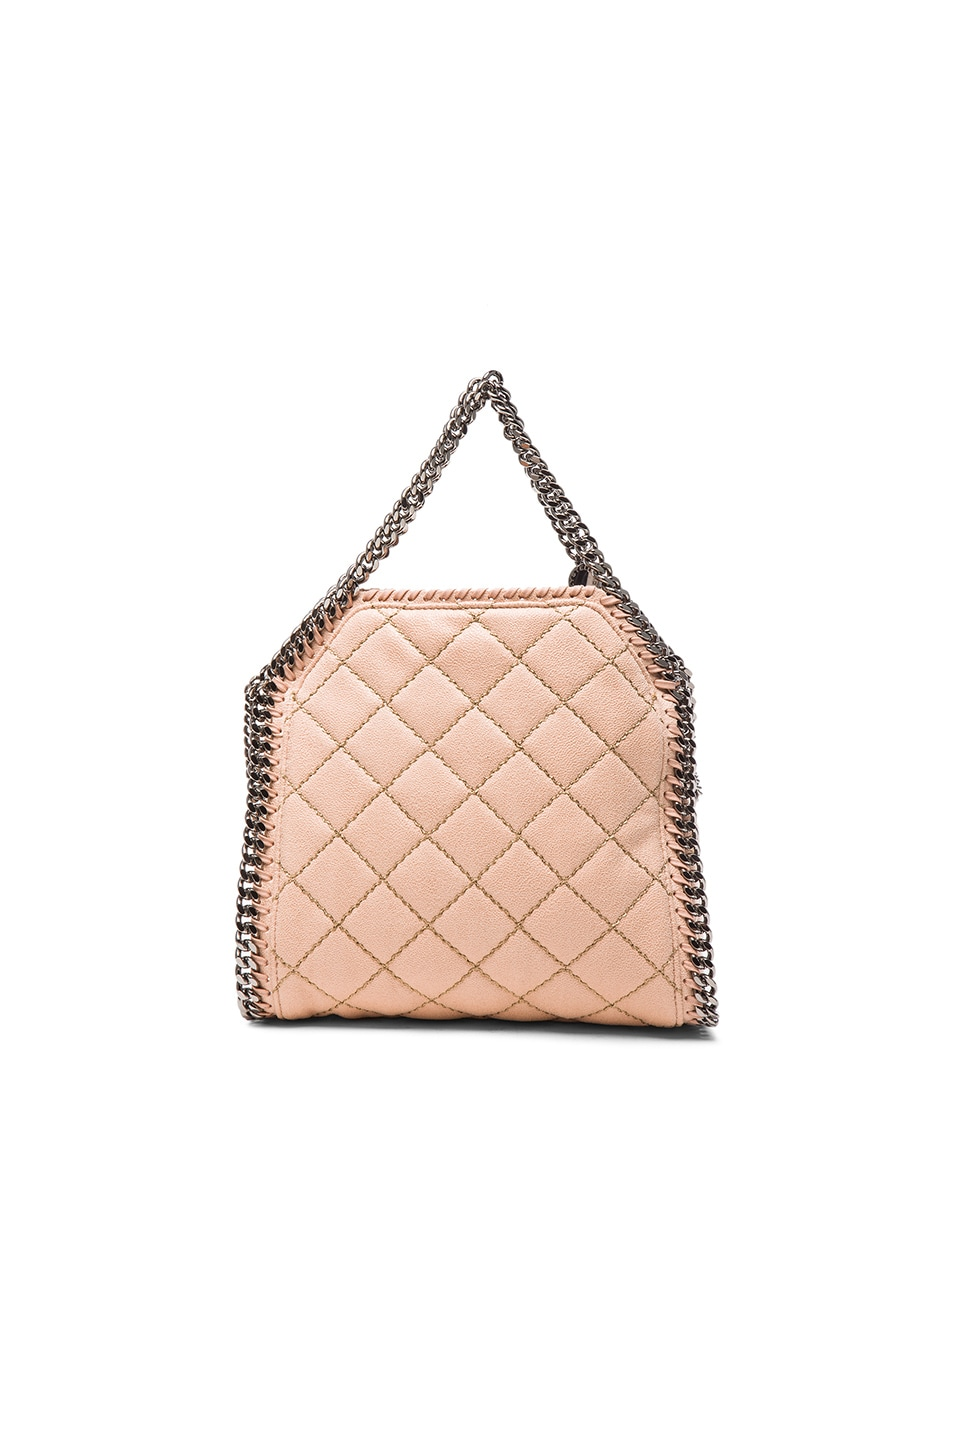 9bd01ca02b Image 2 of Stella McCartney Falabella Quilted Shaggy Deer Tiny Tote in  Powder